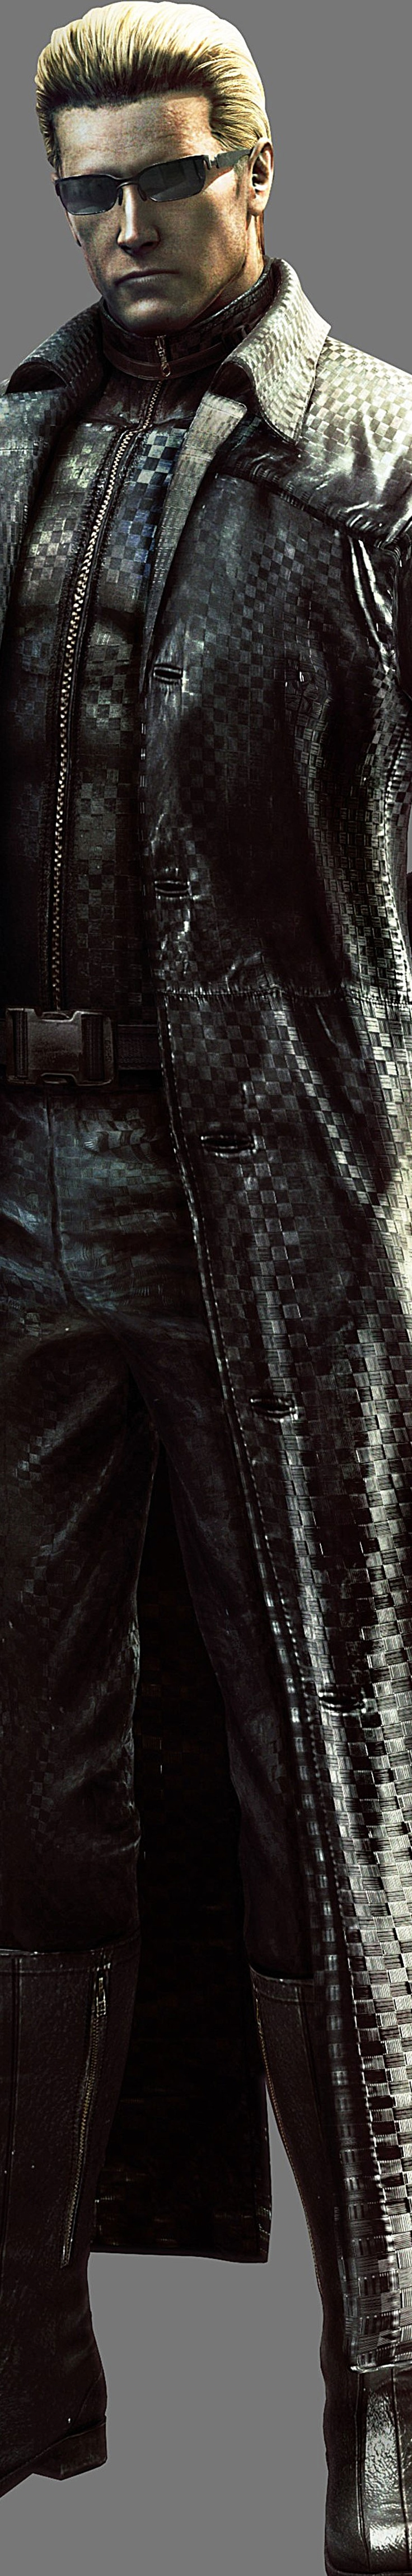 Albert Wesker has also been in the resident evil series since the first game.  He was infected with the T-virus when a B.O.W. named Tyrant killed him.